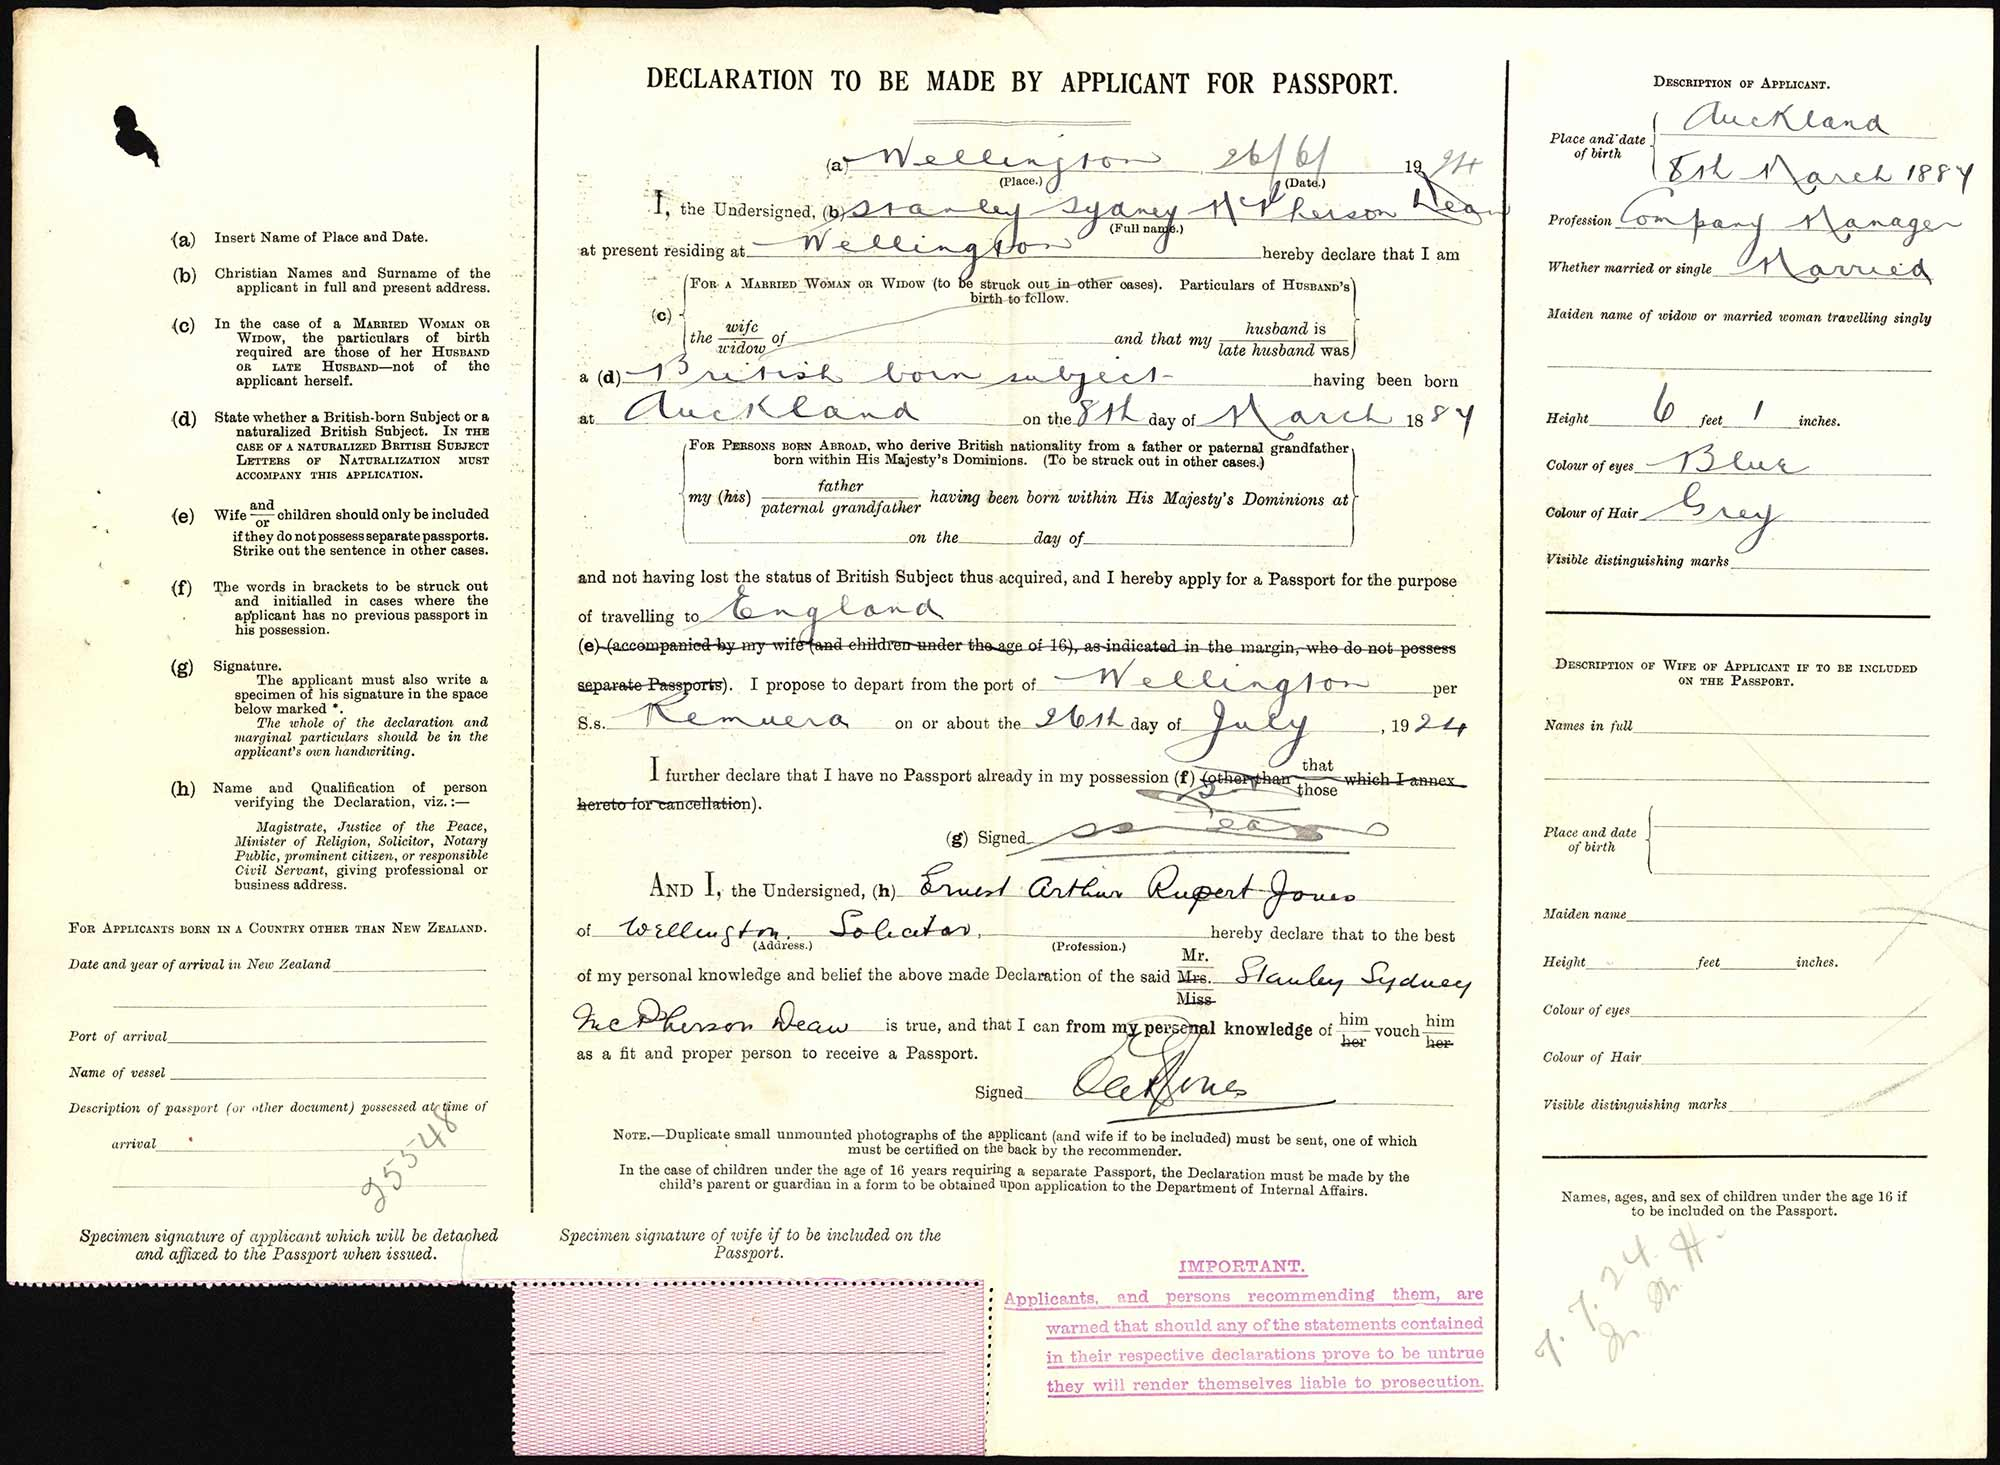 Stanley Sydney McPherson Dean passport application